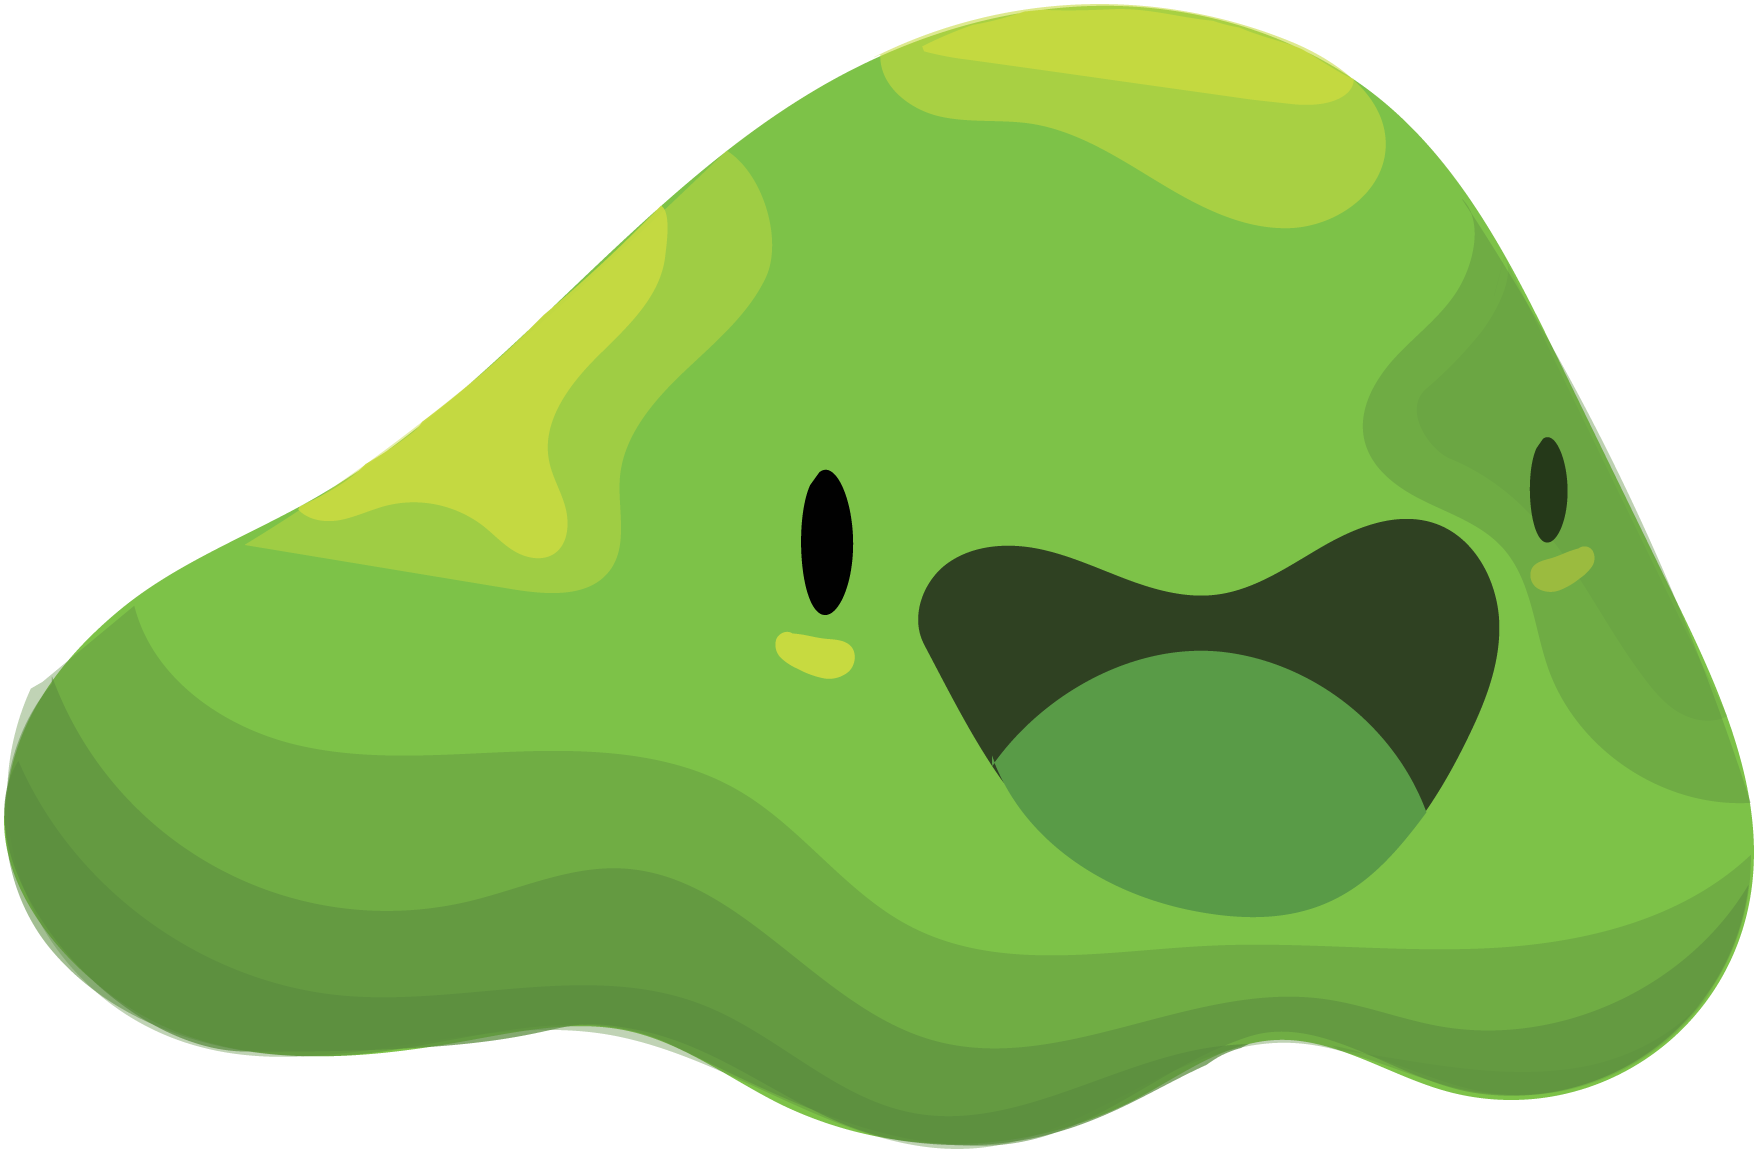 Mucus Png - Slime clipart mucus, Slime mucus Transparent FREE for download on ...